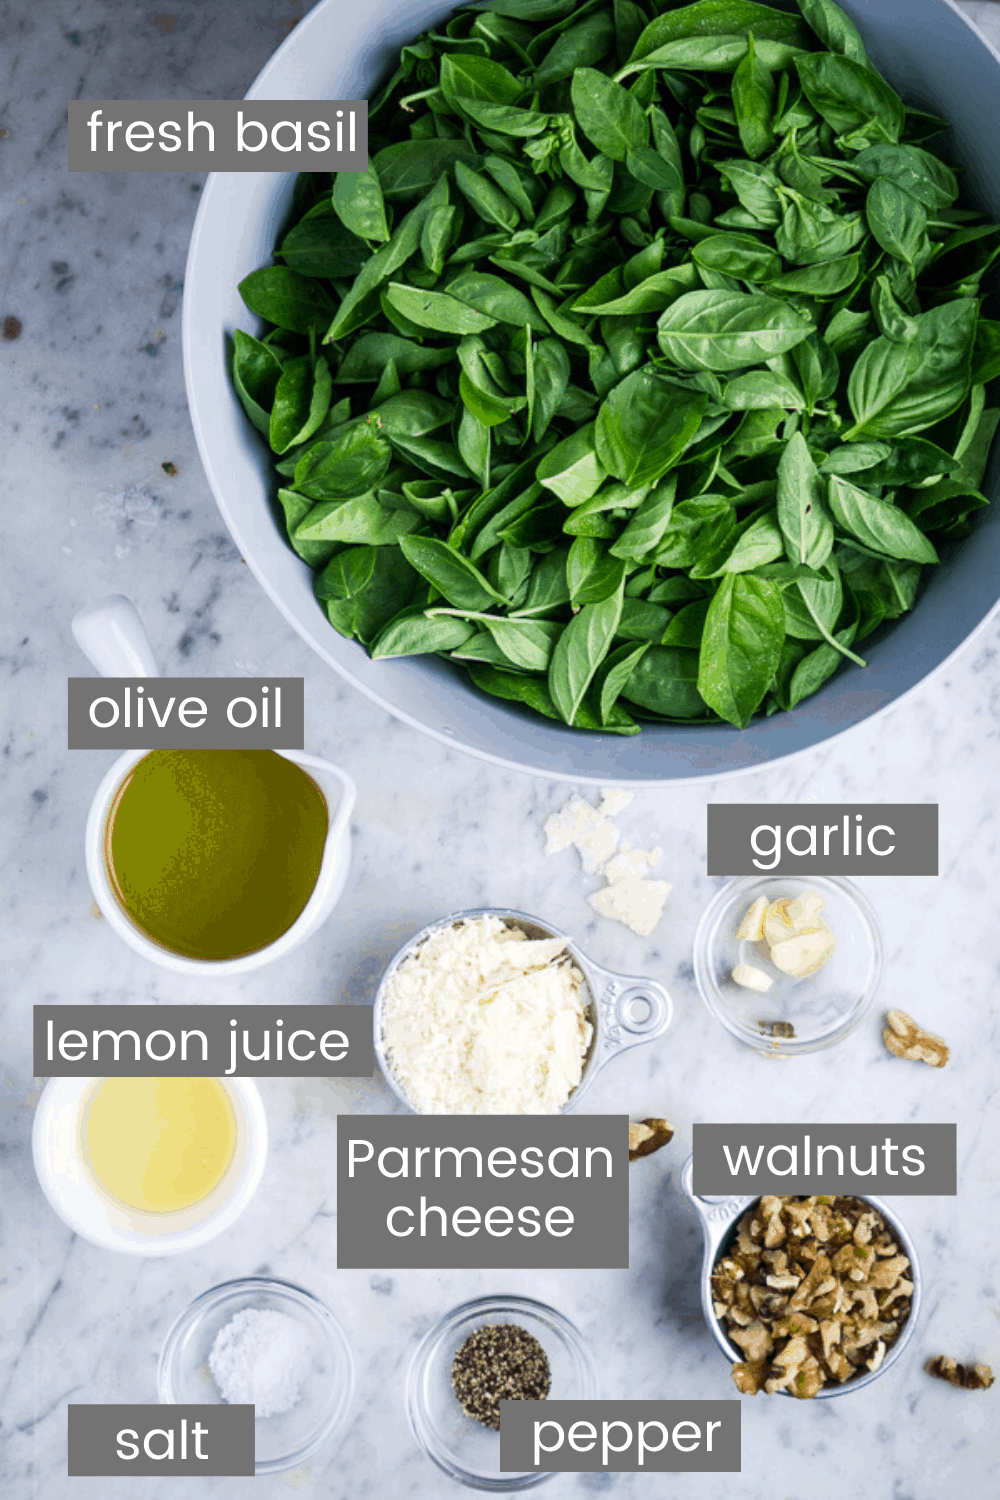 basil pesto ingredients in glass bowls with text overlay